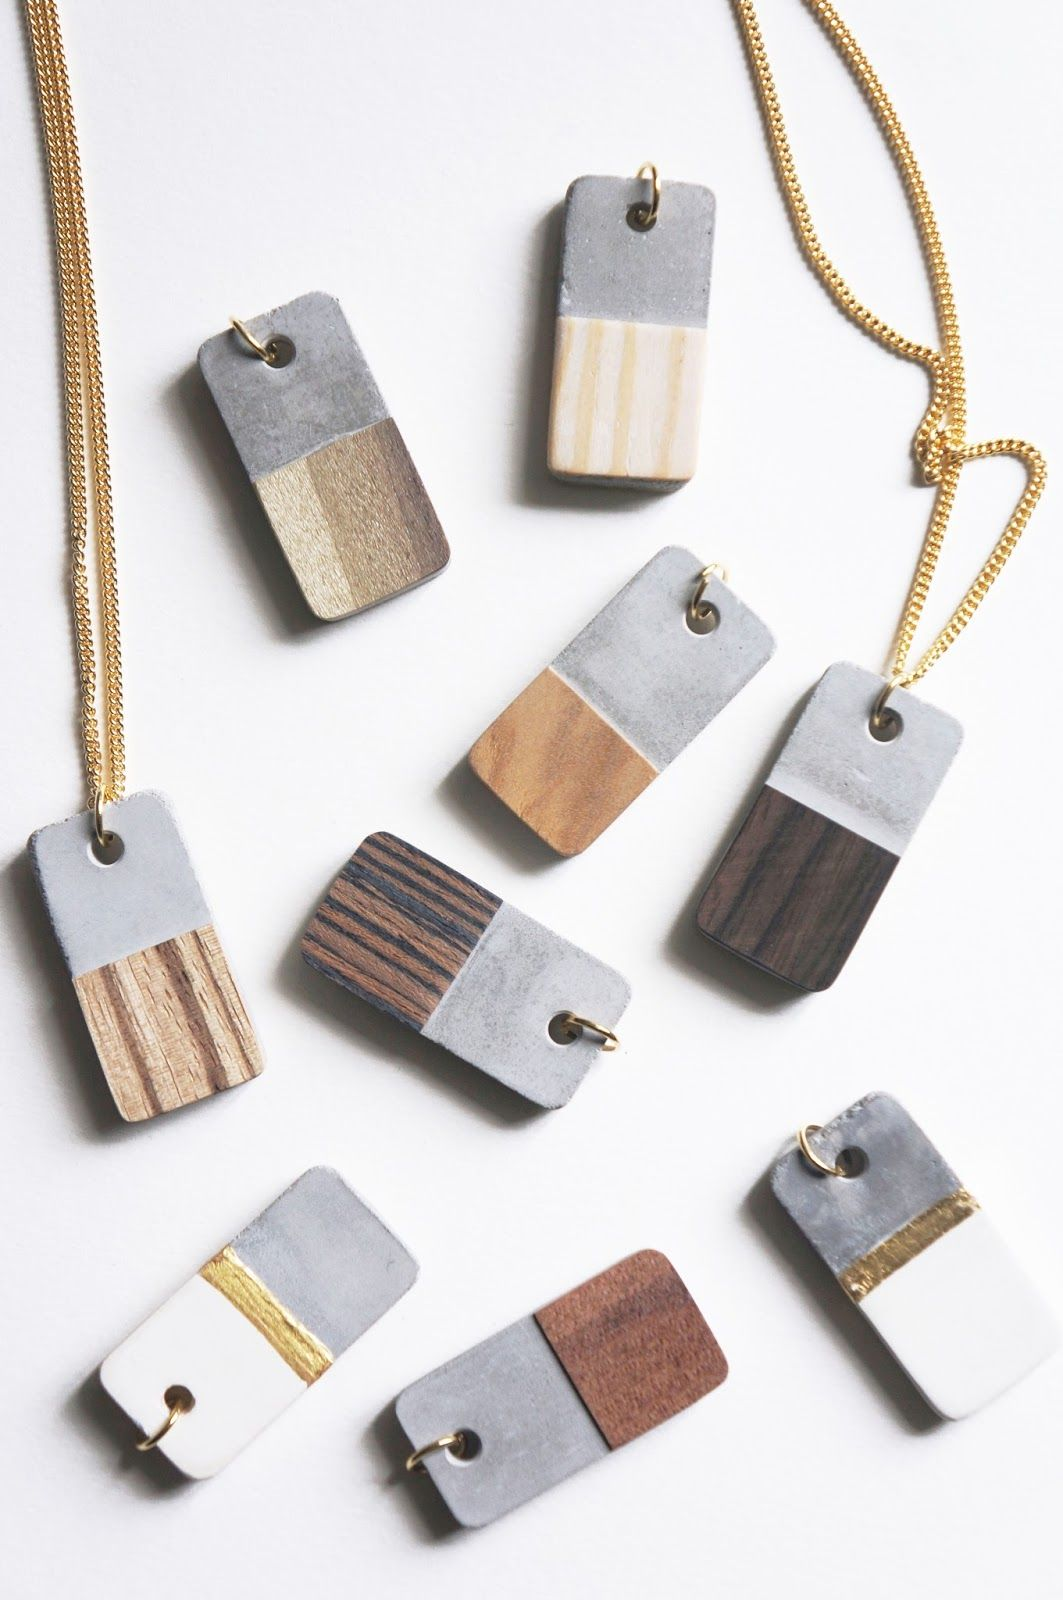 Diy concrete and wood veneer necklace tutorial from tinker paint diy concrete and wood veneer necklace tutorial from tinker paint bake cakeske these modern mozeypictures Choice Image